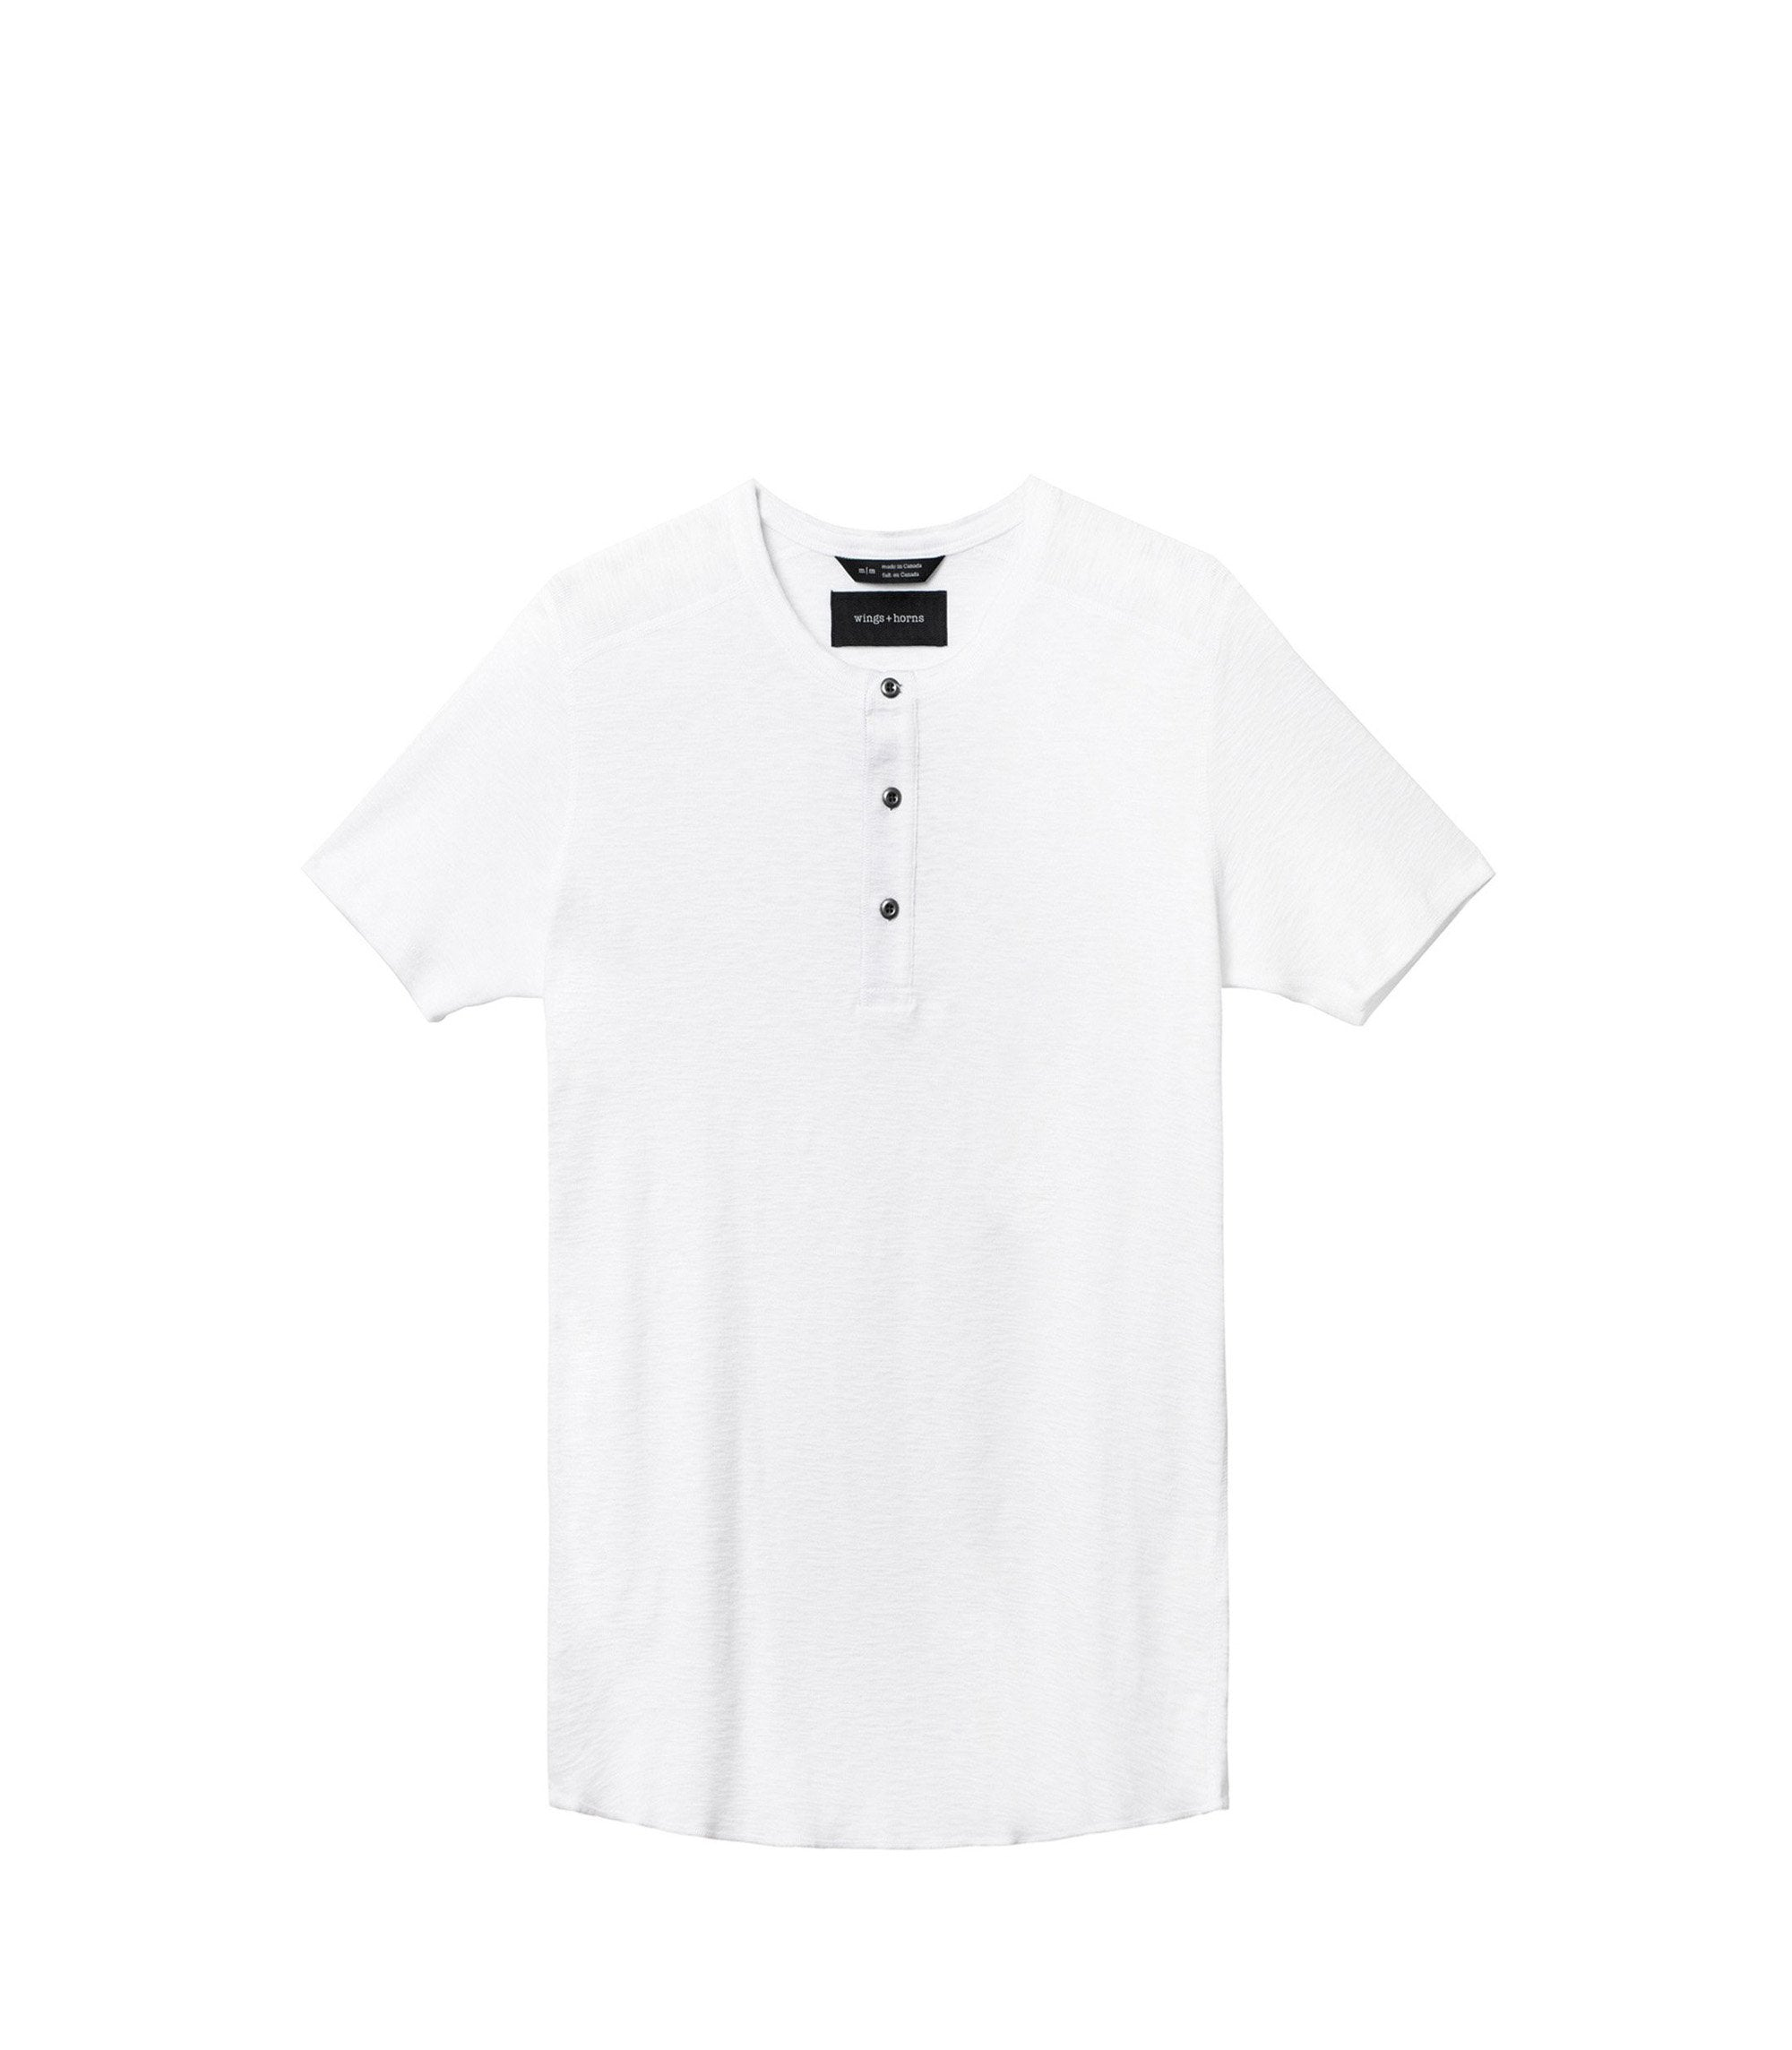 WINGS + HORNS M'S T-SHIRTS Wht XXL BASE S/S HENLEY